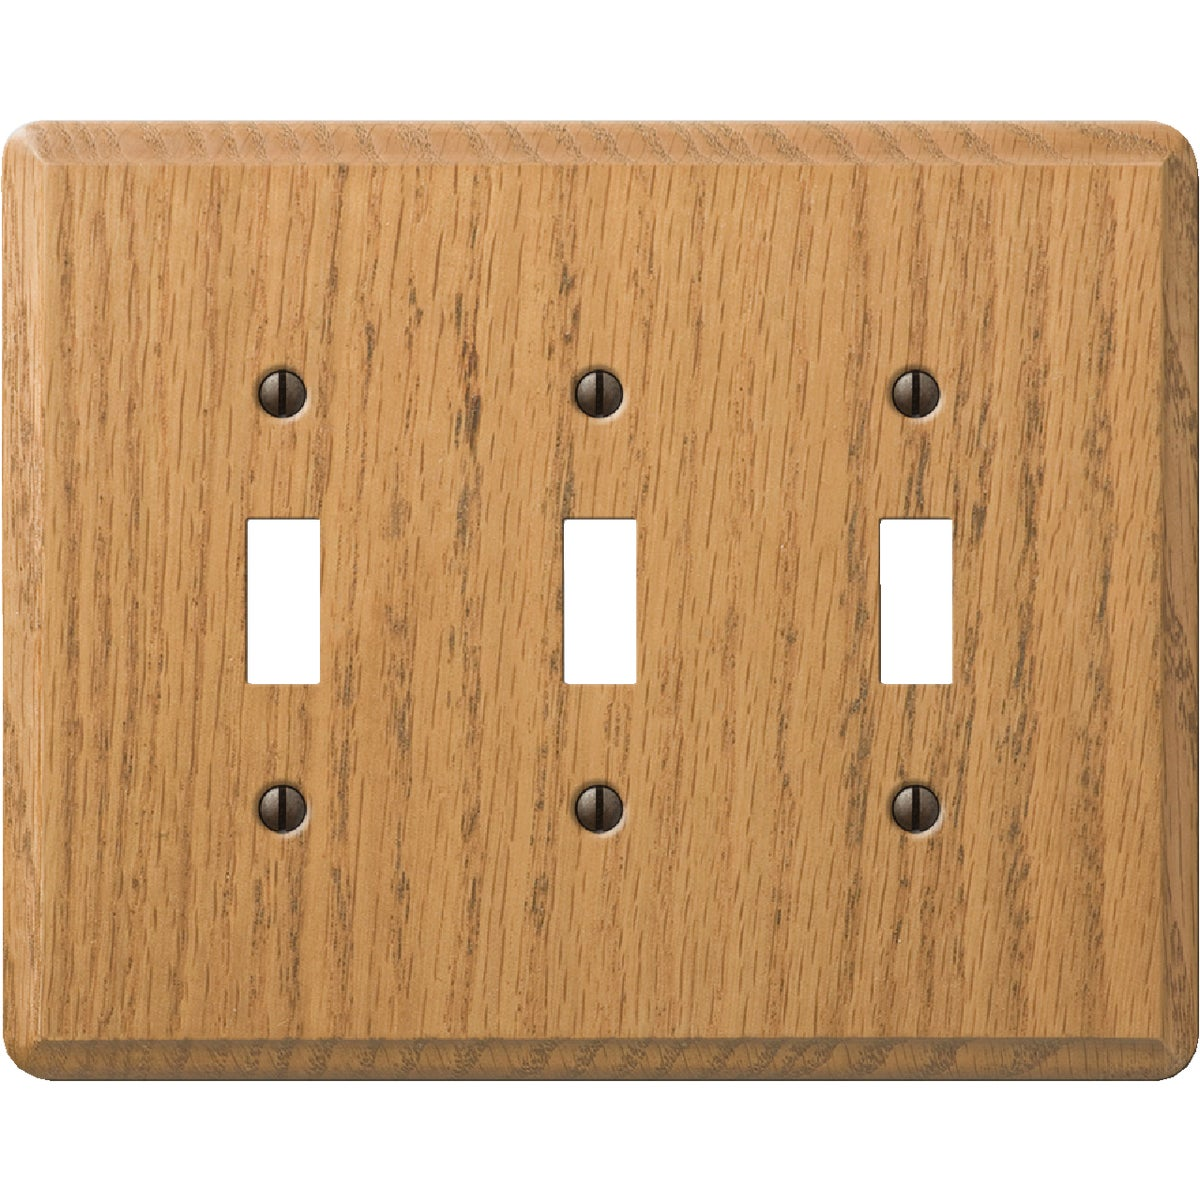 OAK 3-TOGGLE WALL PLATE - 903L by Jackson Deerfield Mf